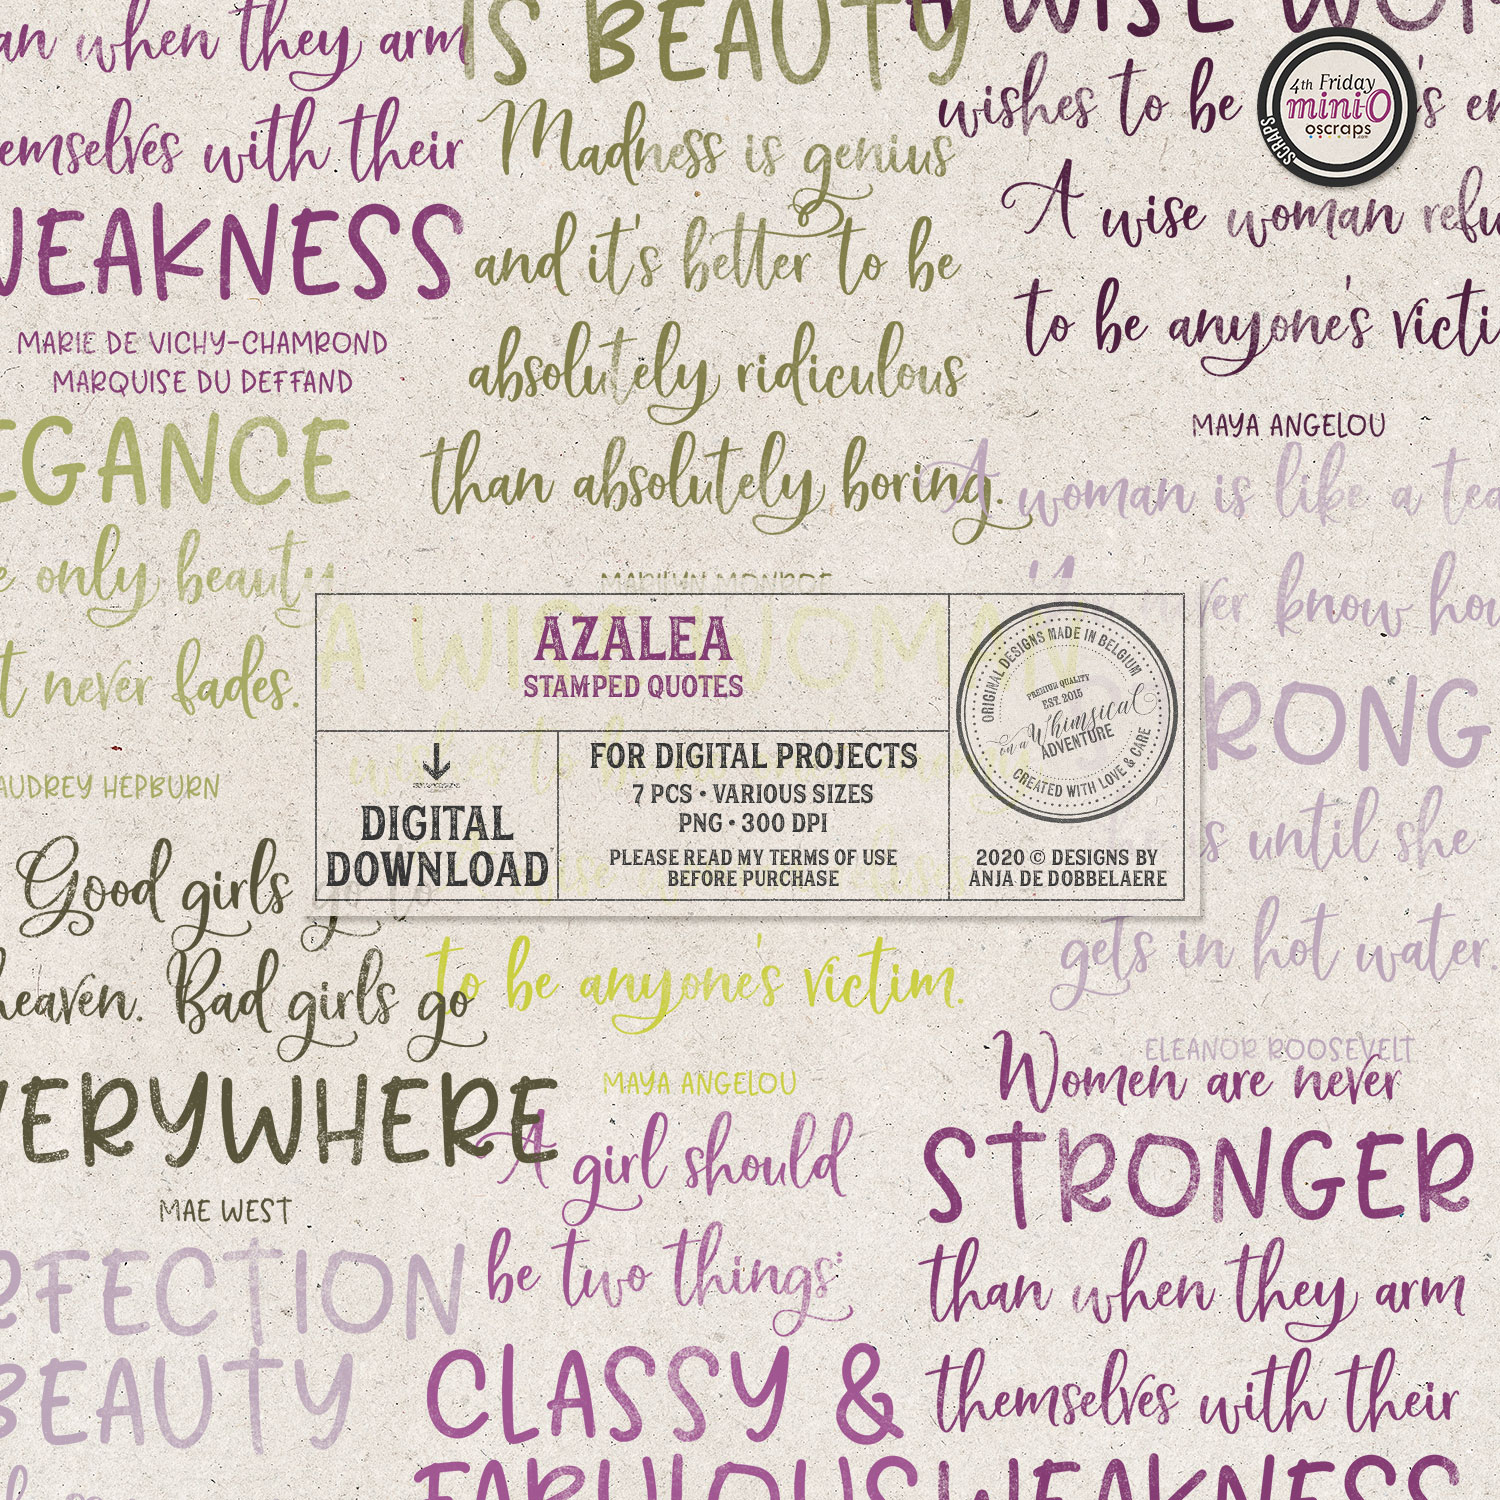 Azalea Stamped Quotes by On A Whimsical Adventure